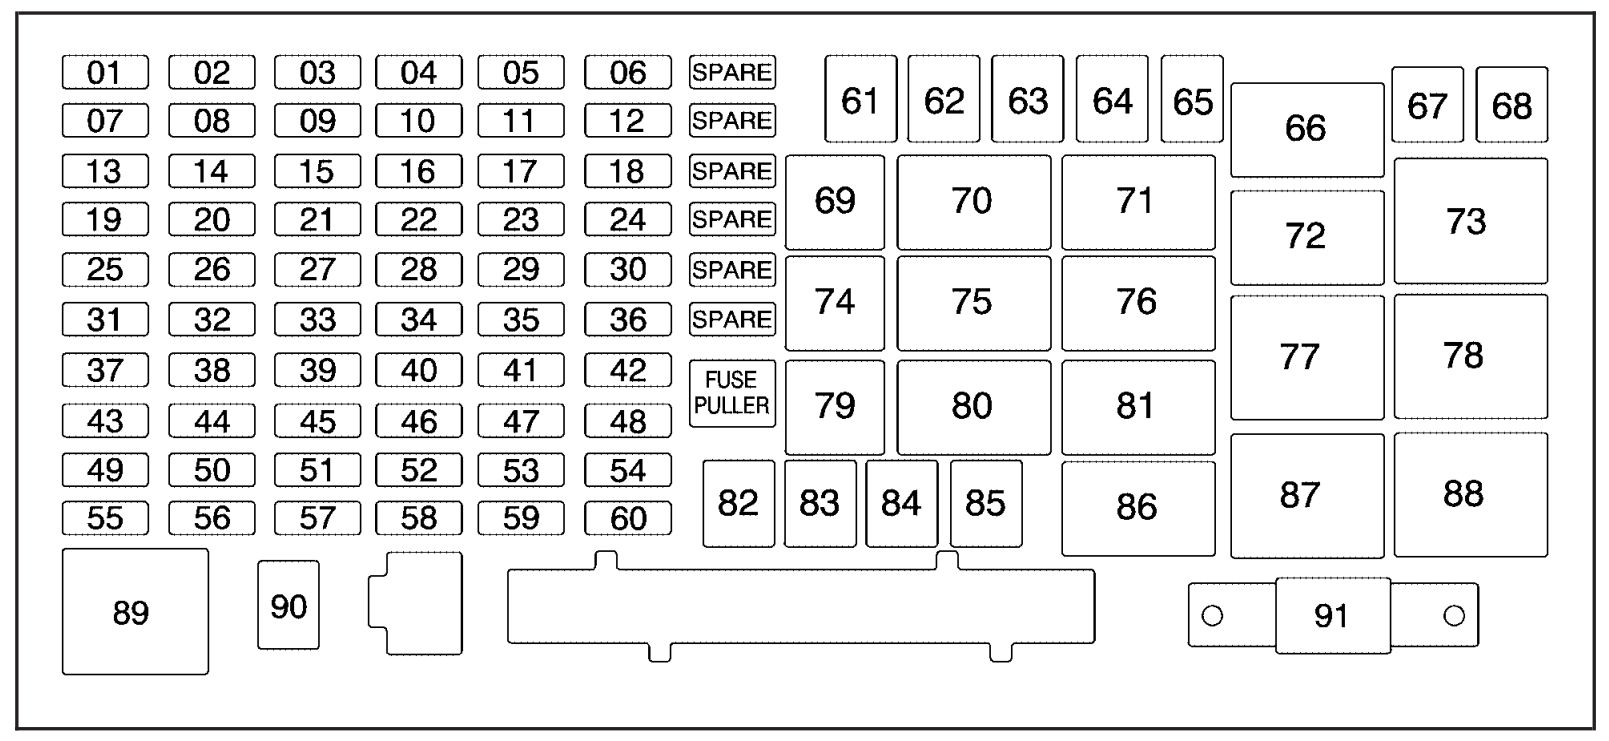 2008 Hyundai Elantra Fuse Box Diagram Wiring Library Layout